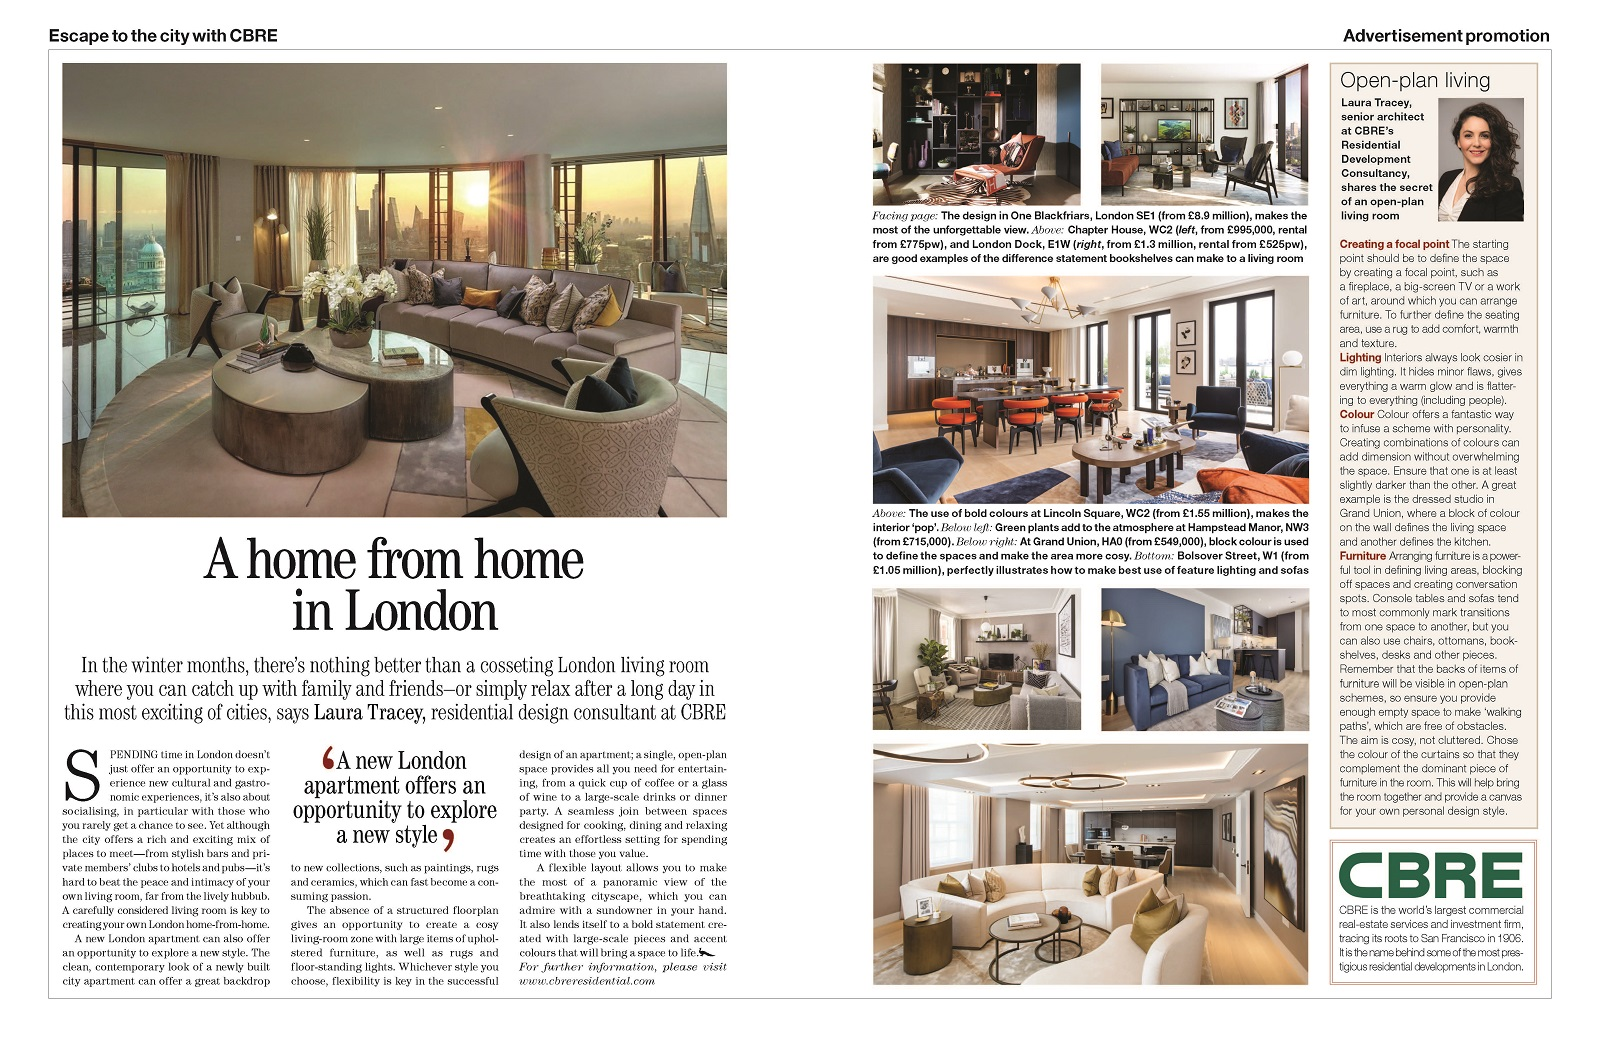 Country life article, a home from home